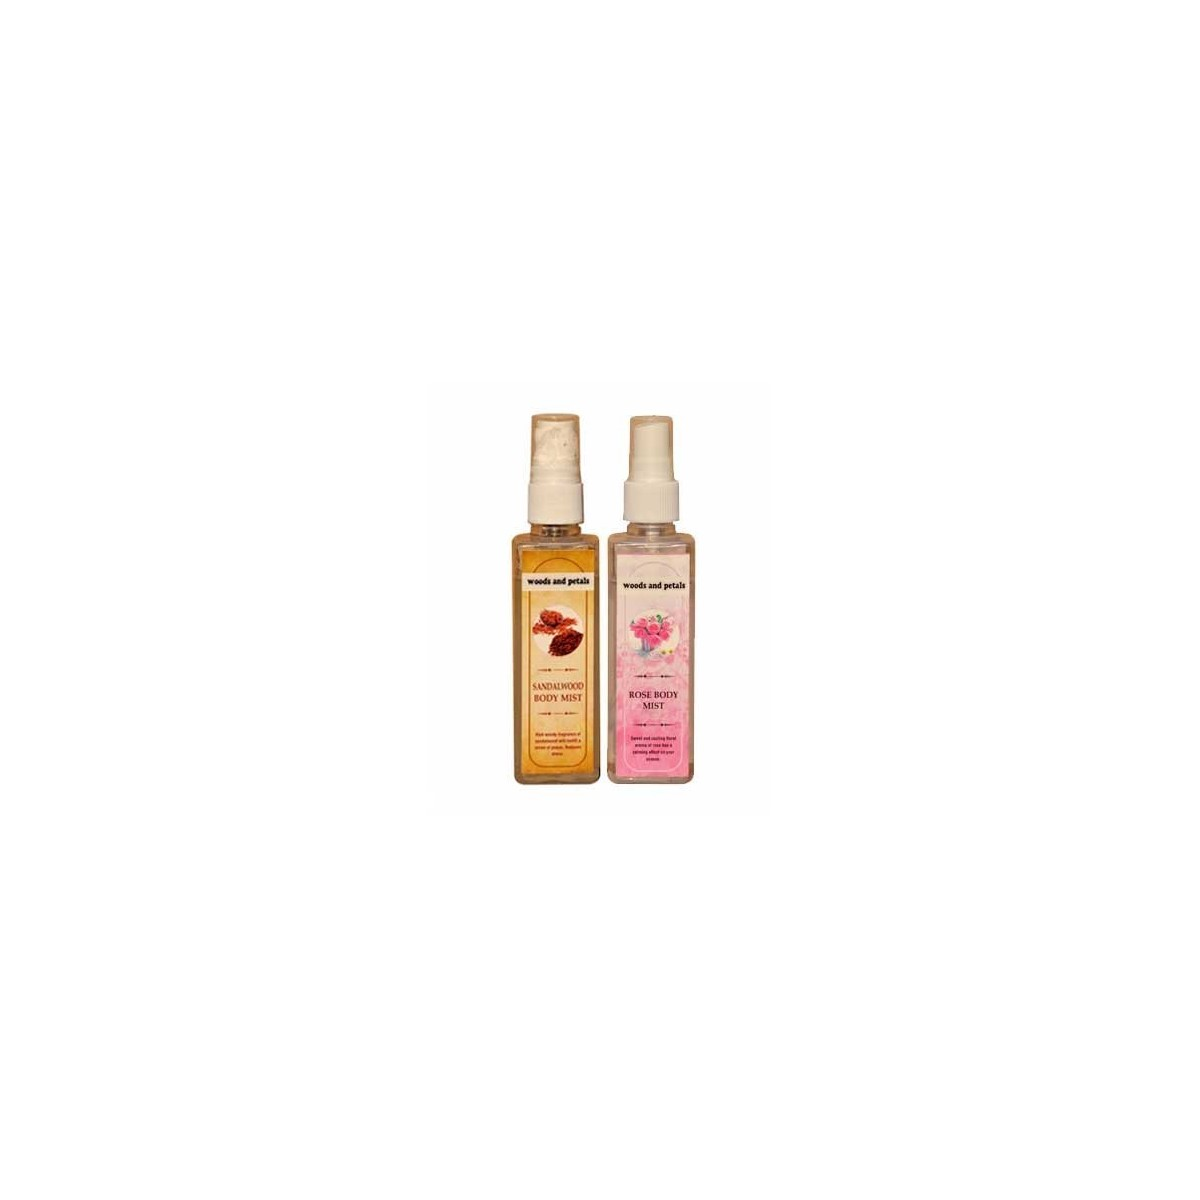 Woods And Petals  Sandalwood + Rose Body Mist